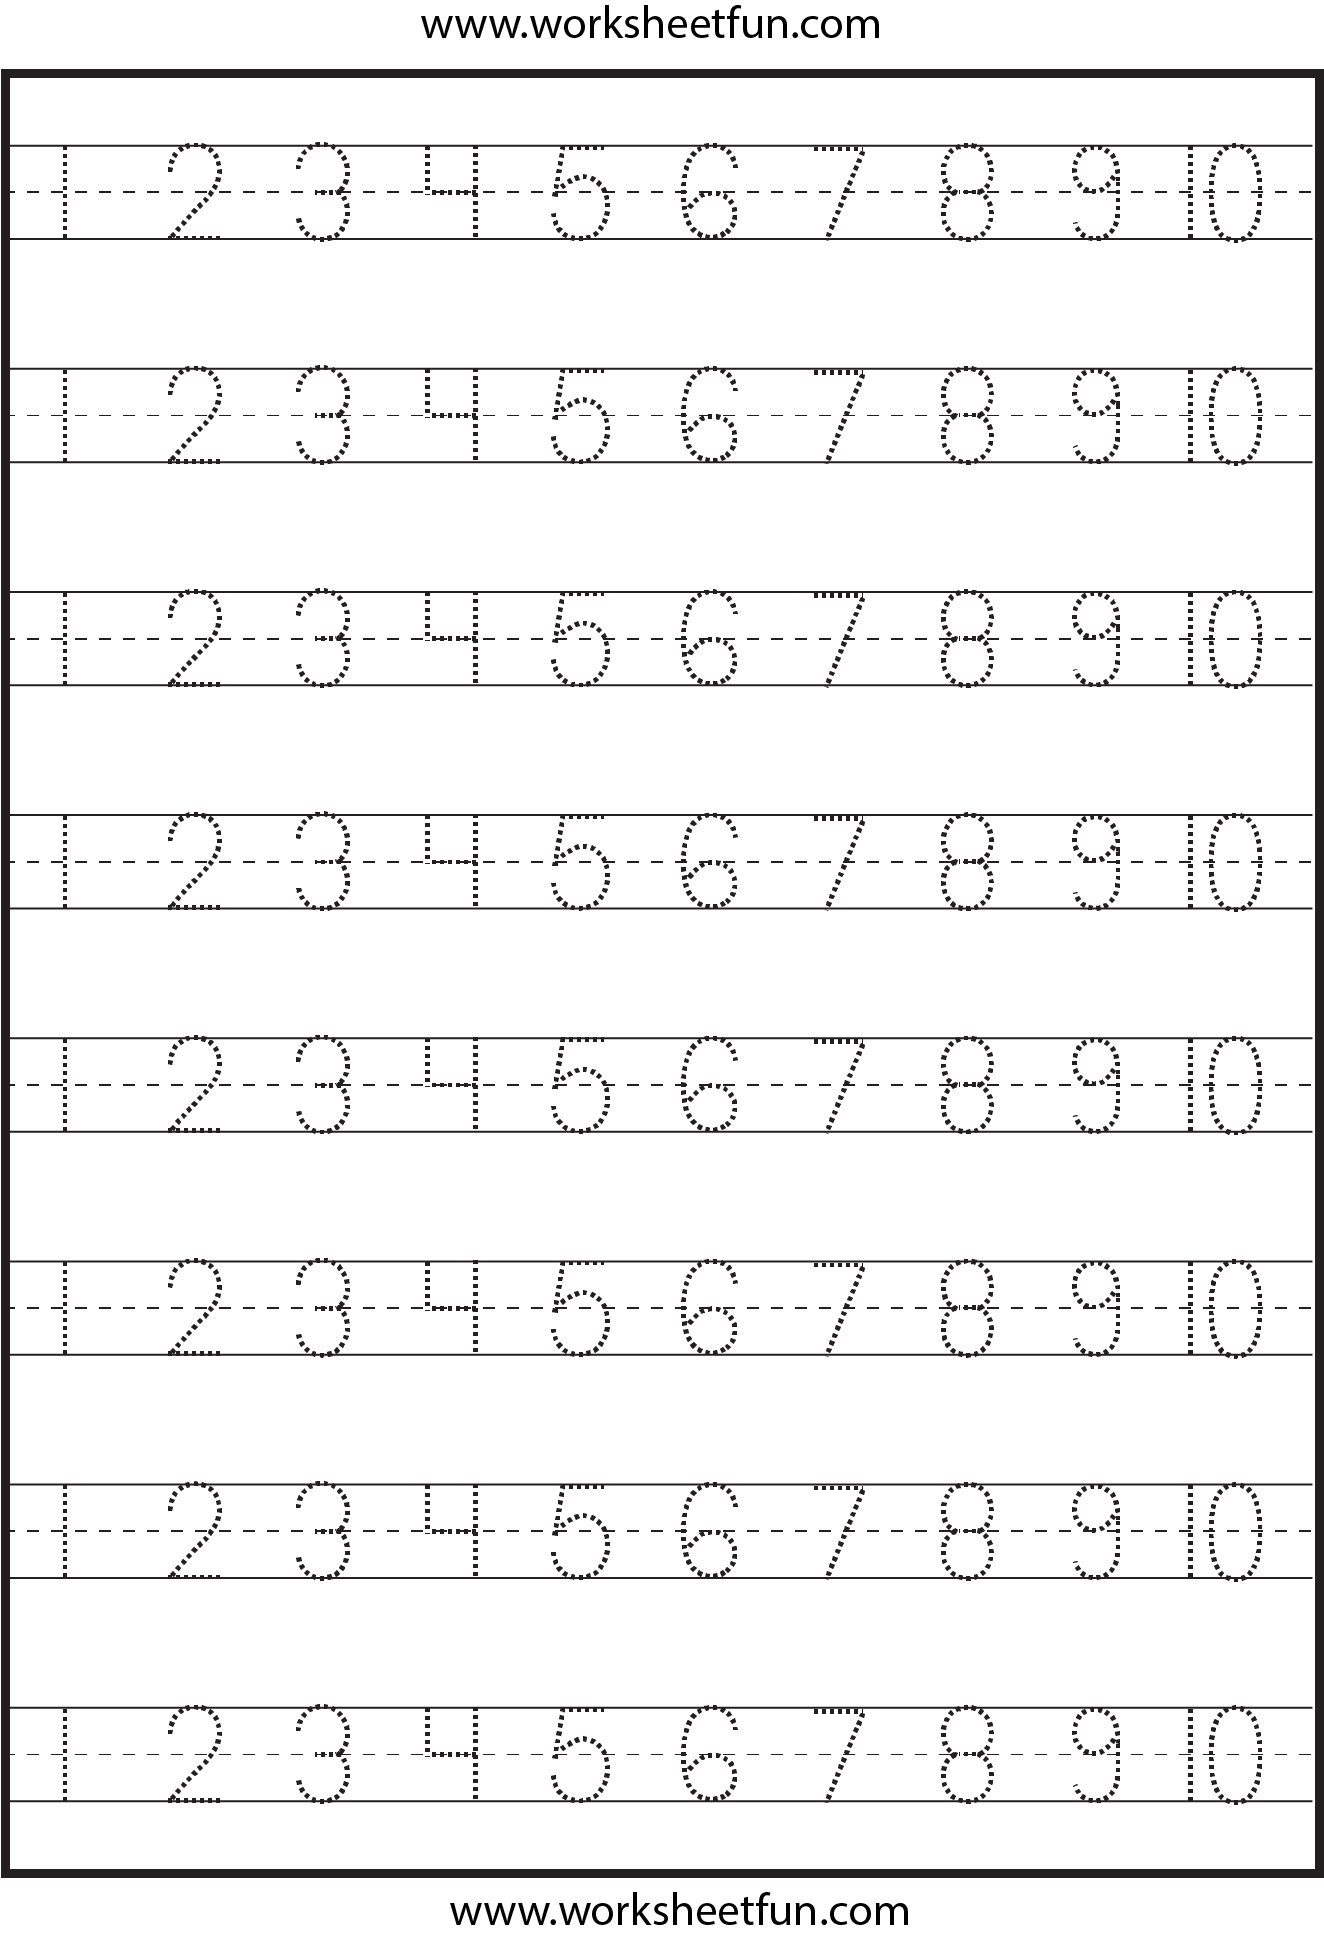 Printables Preschool Number Tracing Worksheets 1-20 number tracing 1 10 worksheet free printable worksheets tracing